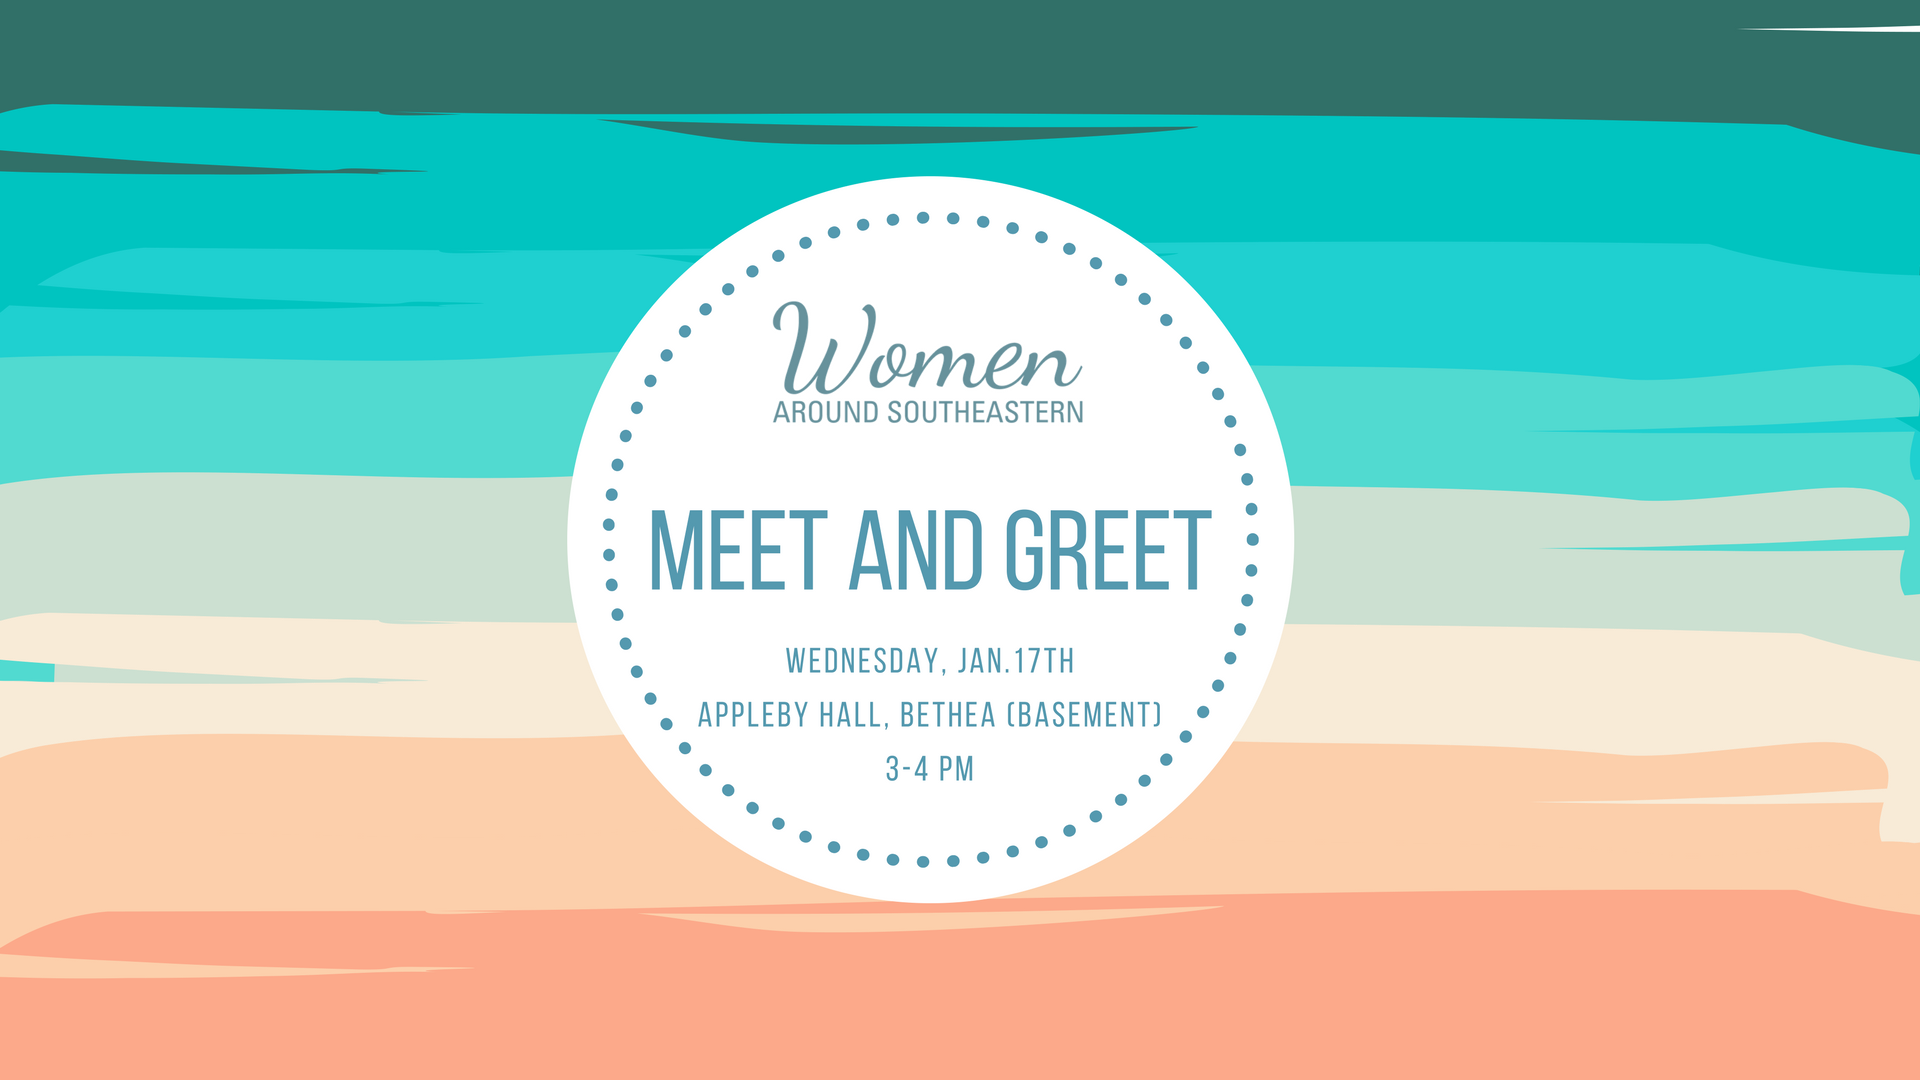 Womens meet and greet january 17 around southeastern womens meet and greet january 17 kristyandbryce Gallery